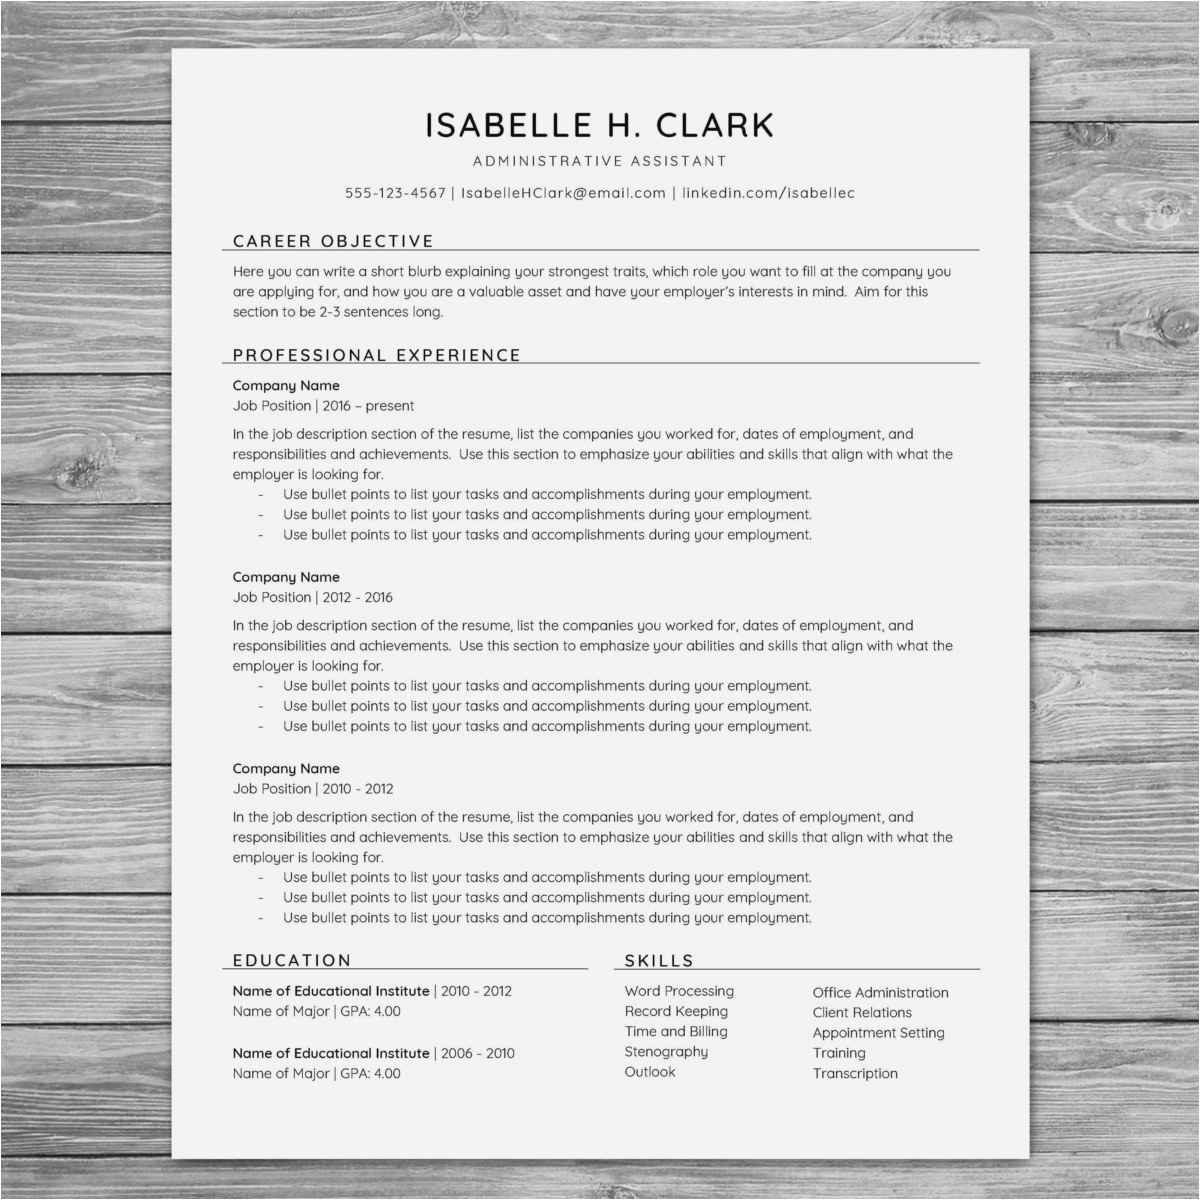 Paralegal Resume Template - Cool 4 Letter Names Free Cover Letter Name Fresh Paralegal Resume 0d